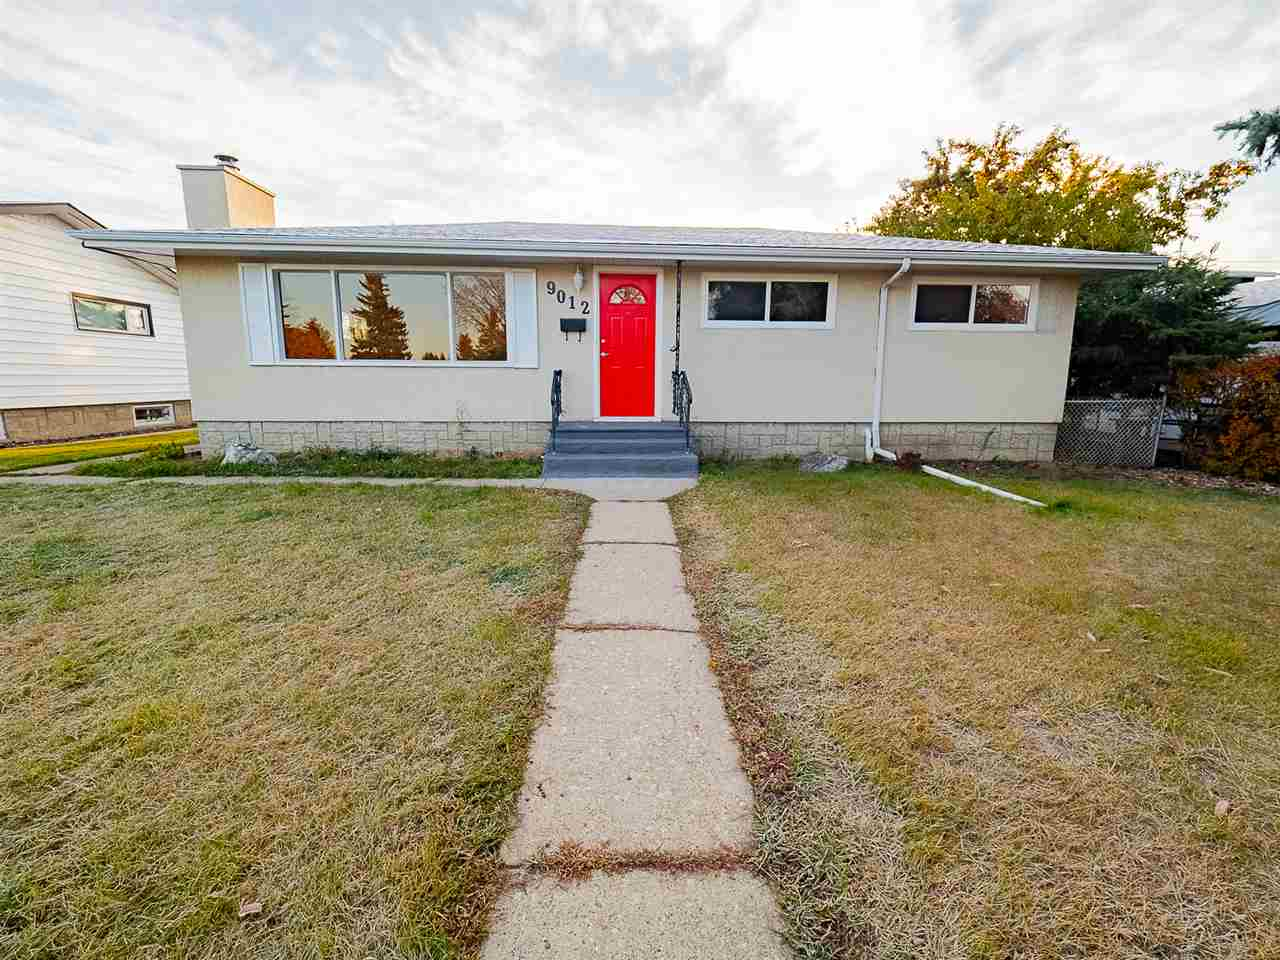 Totally renovated bungalow directly across from park setting! Comes with a separate entrance to basement with 2 bedrooms, new kitchen and bath, washer and dryer, (seller is waiting for occupancy certificate) 5-bedroom, 2 new baths bathroom, over 2000 sqft of developed living space, large fenced yard with over sized double garage 24 x 22 !  New roof, windows, doors, flooring, kitchen, new laminate up and carpet down. Fabulous revenue earner! Live up, rent down! Top floor has potential rent for $1150 plus $300 utilities, basement approximately rent for $900 plus $300 utilities, the garage rent for $200 per month. Positive cash flow or excellent mortgage helper. Shows a 10 out of 10!